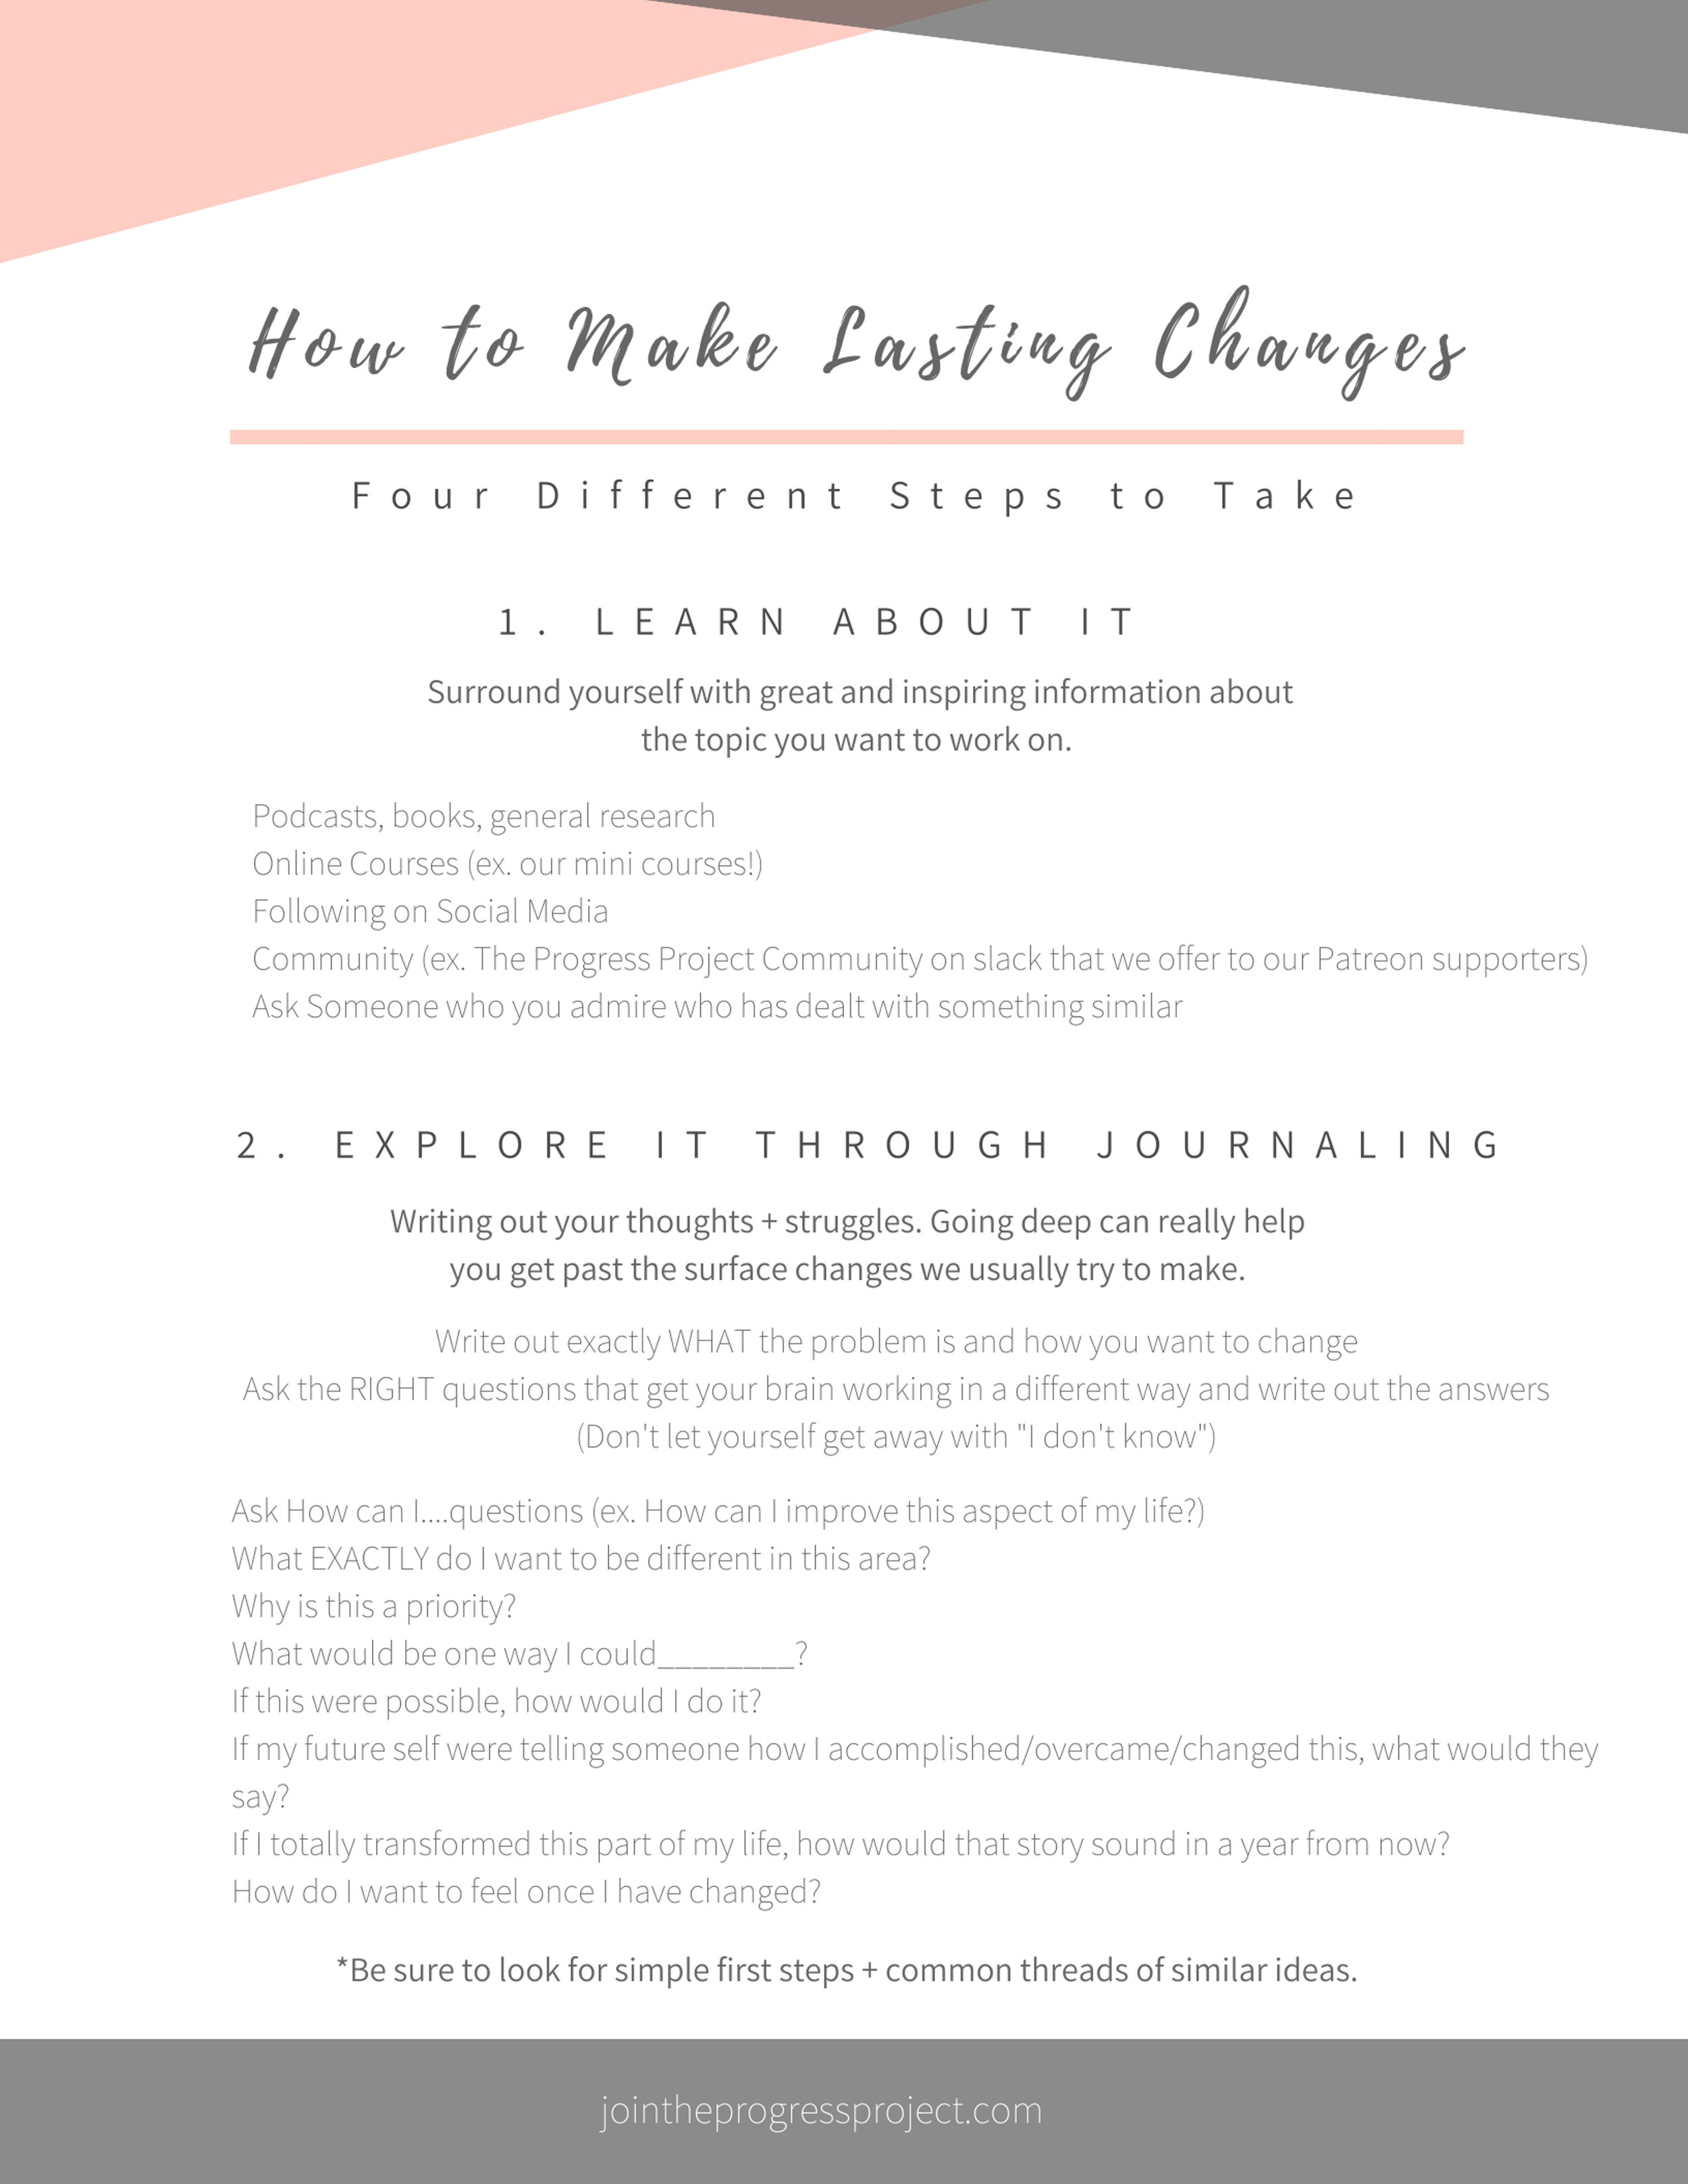 How to make Lasting changes freebie (2).jpg